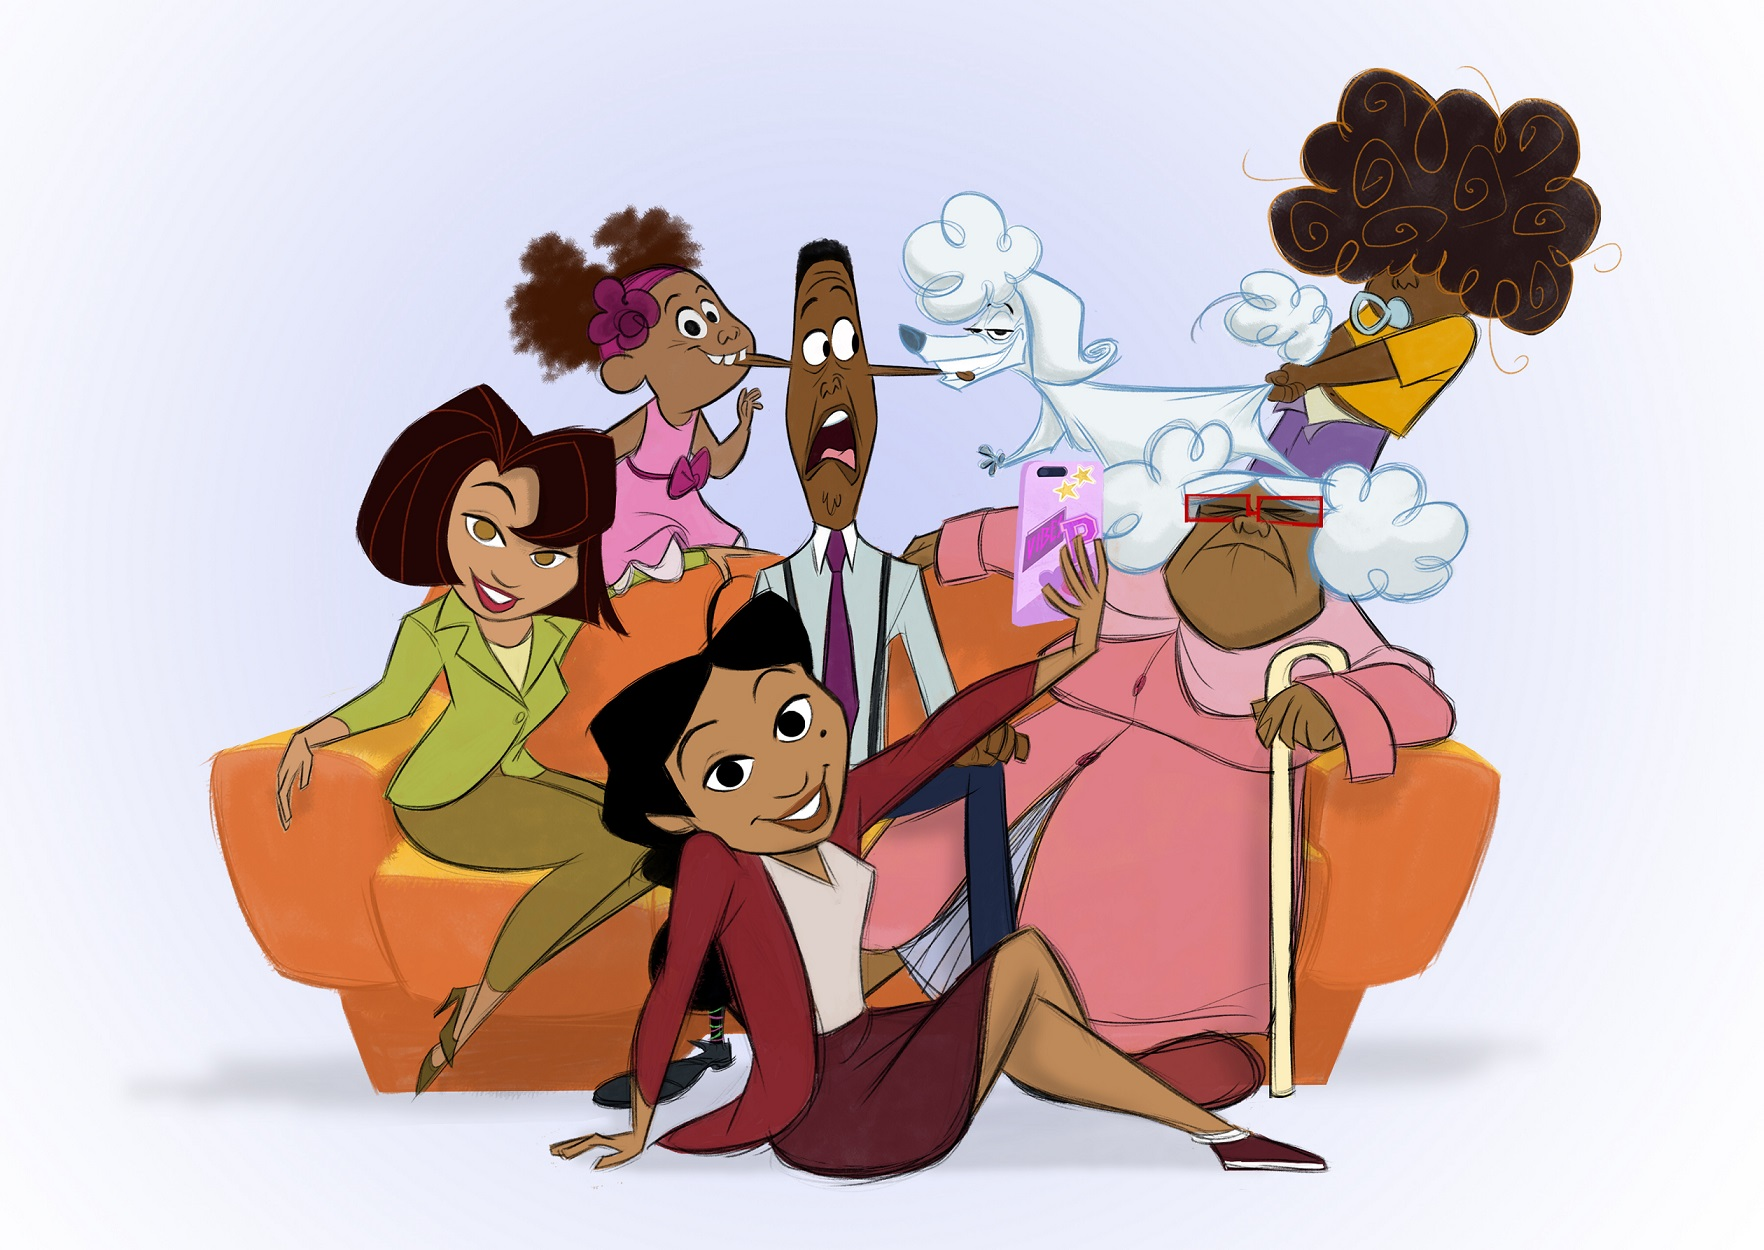 The Proud Family : Louder and Prouder [Disney Television - 2021] ERzBV4CU8AAxePM?format=jpg&name=large